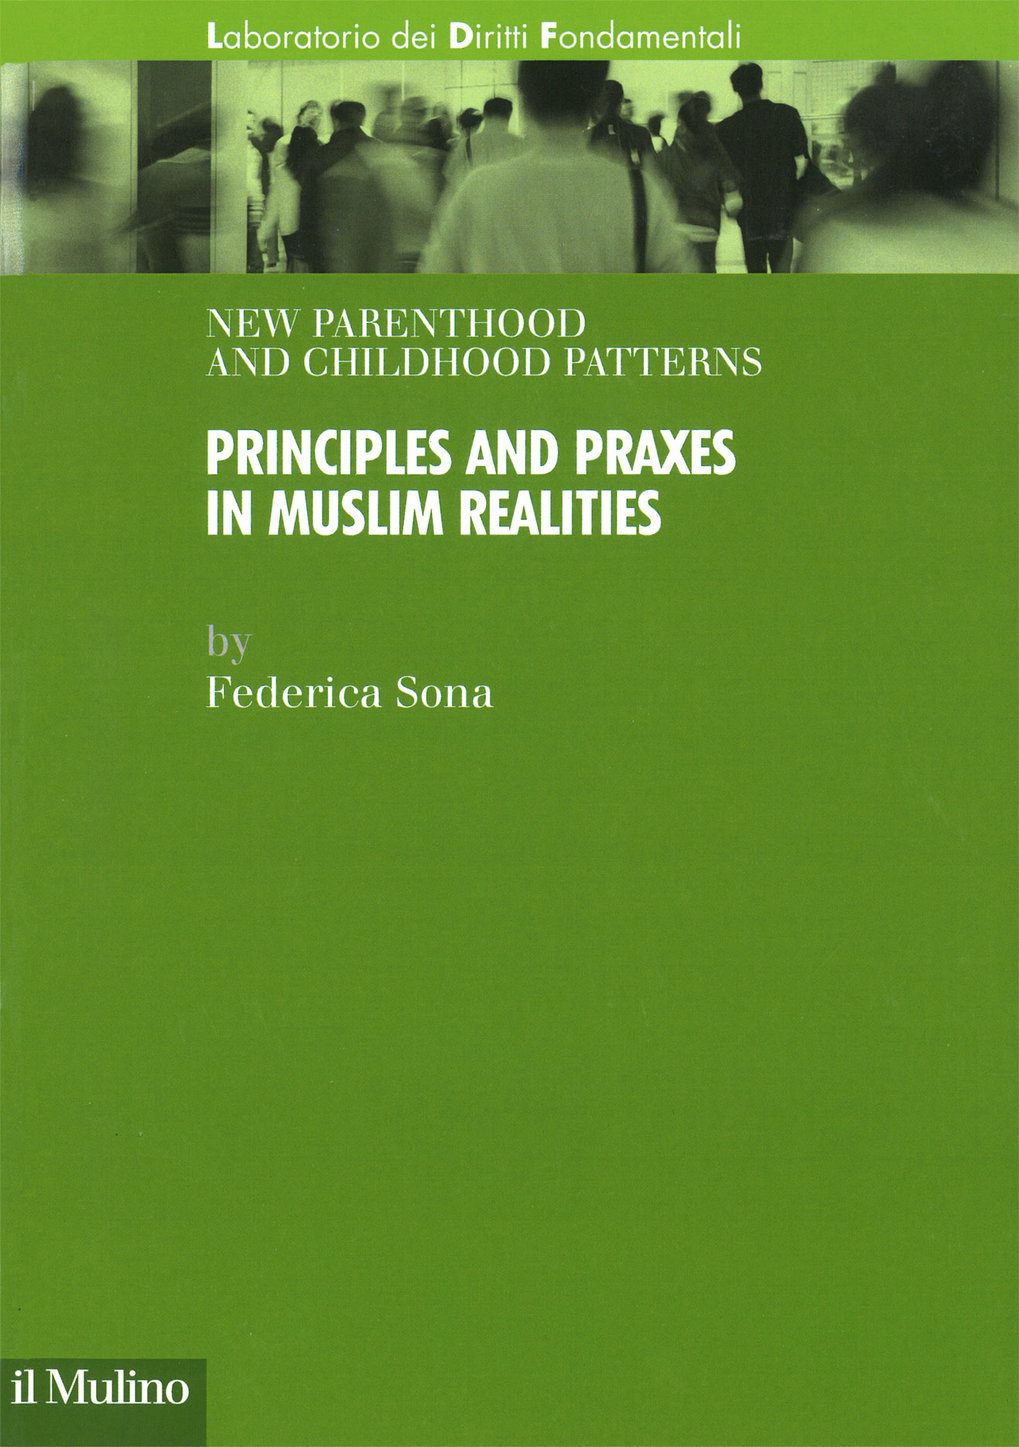 New parenthood and childhood patterns. Principles and praxes in Muslim realities